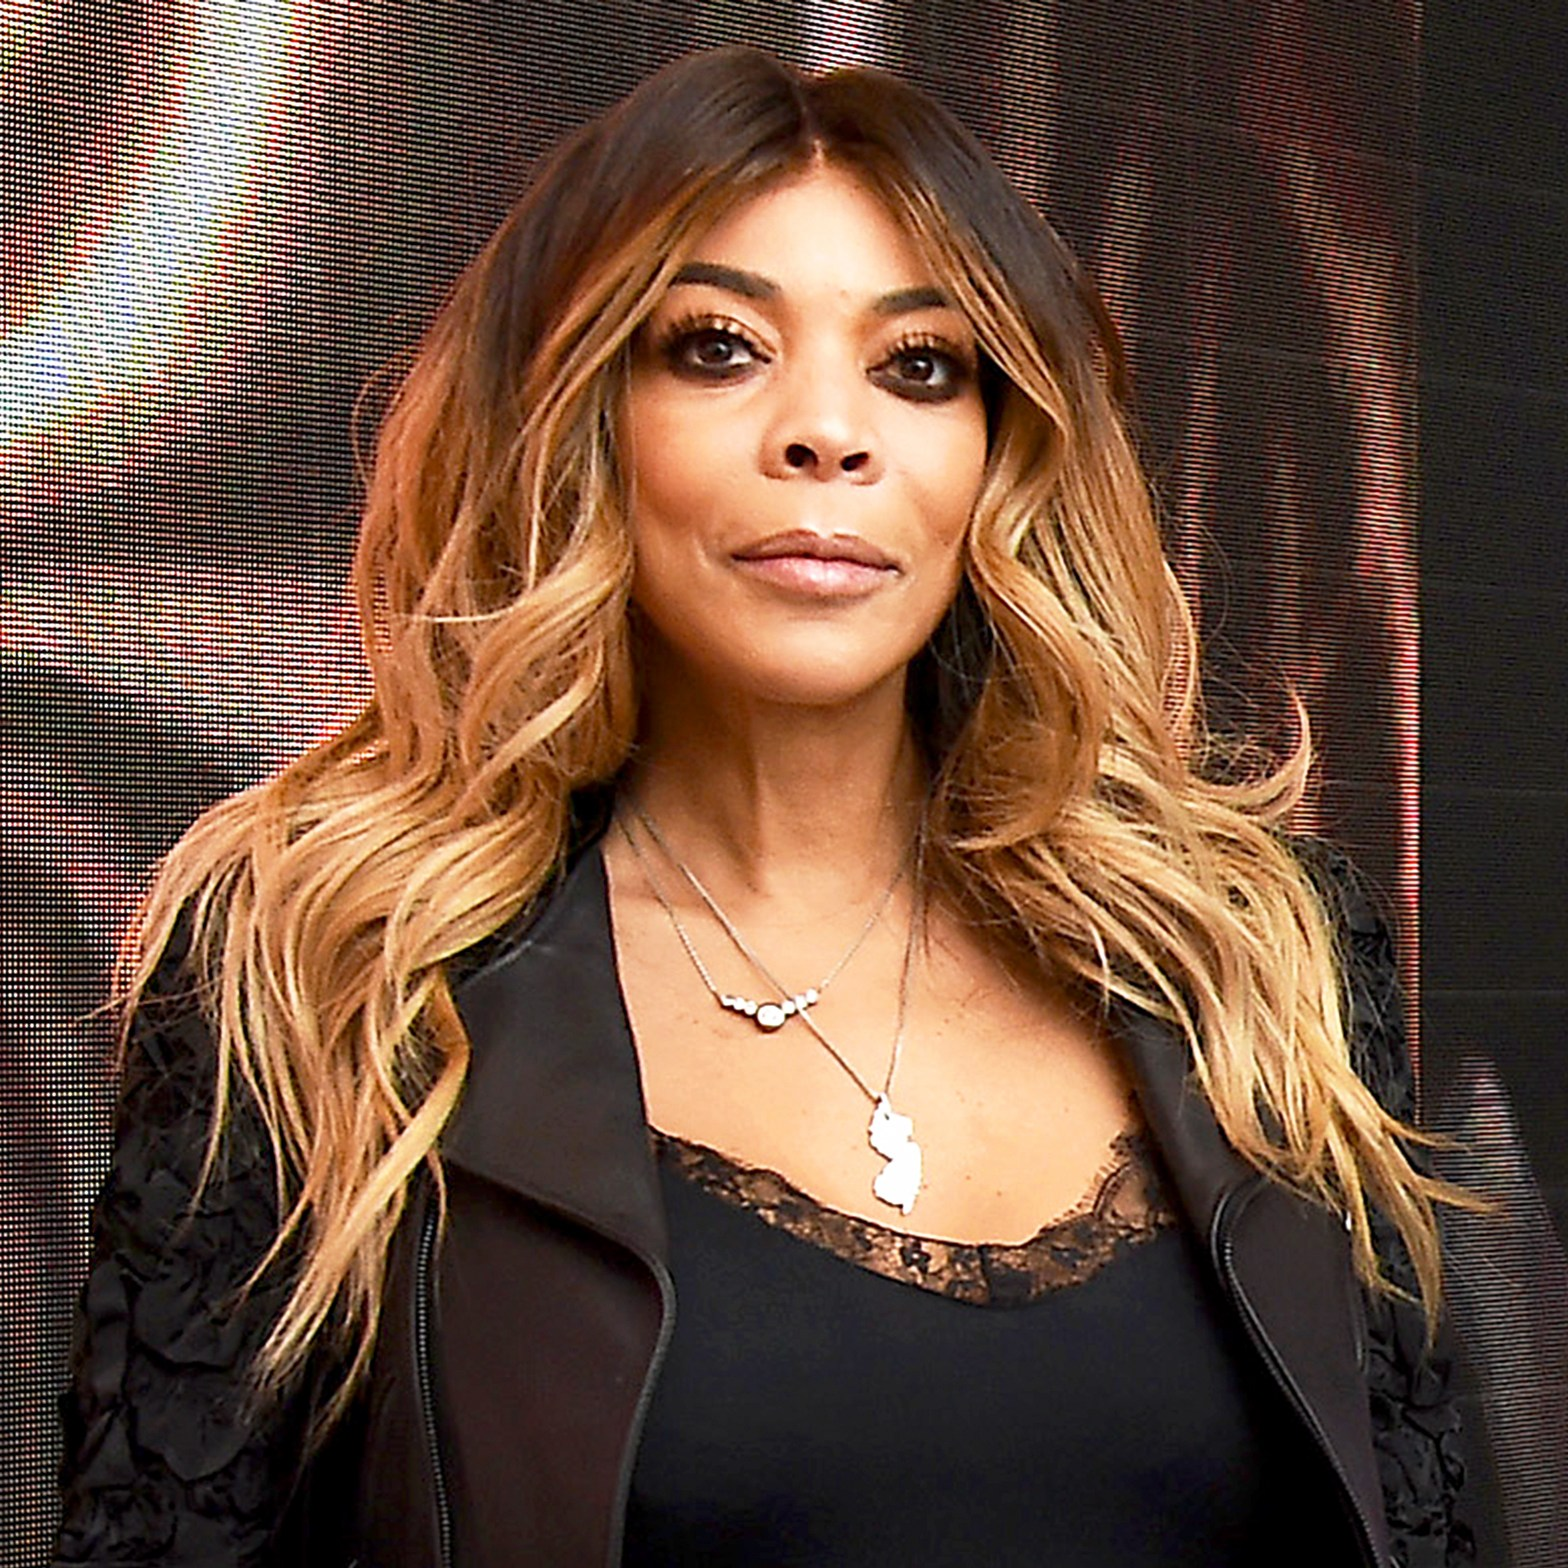 Wendy Williams attends the 50th anniversary celebration of Wilhelmina in New York City.